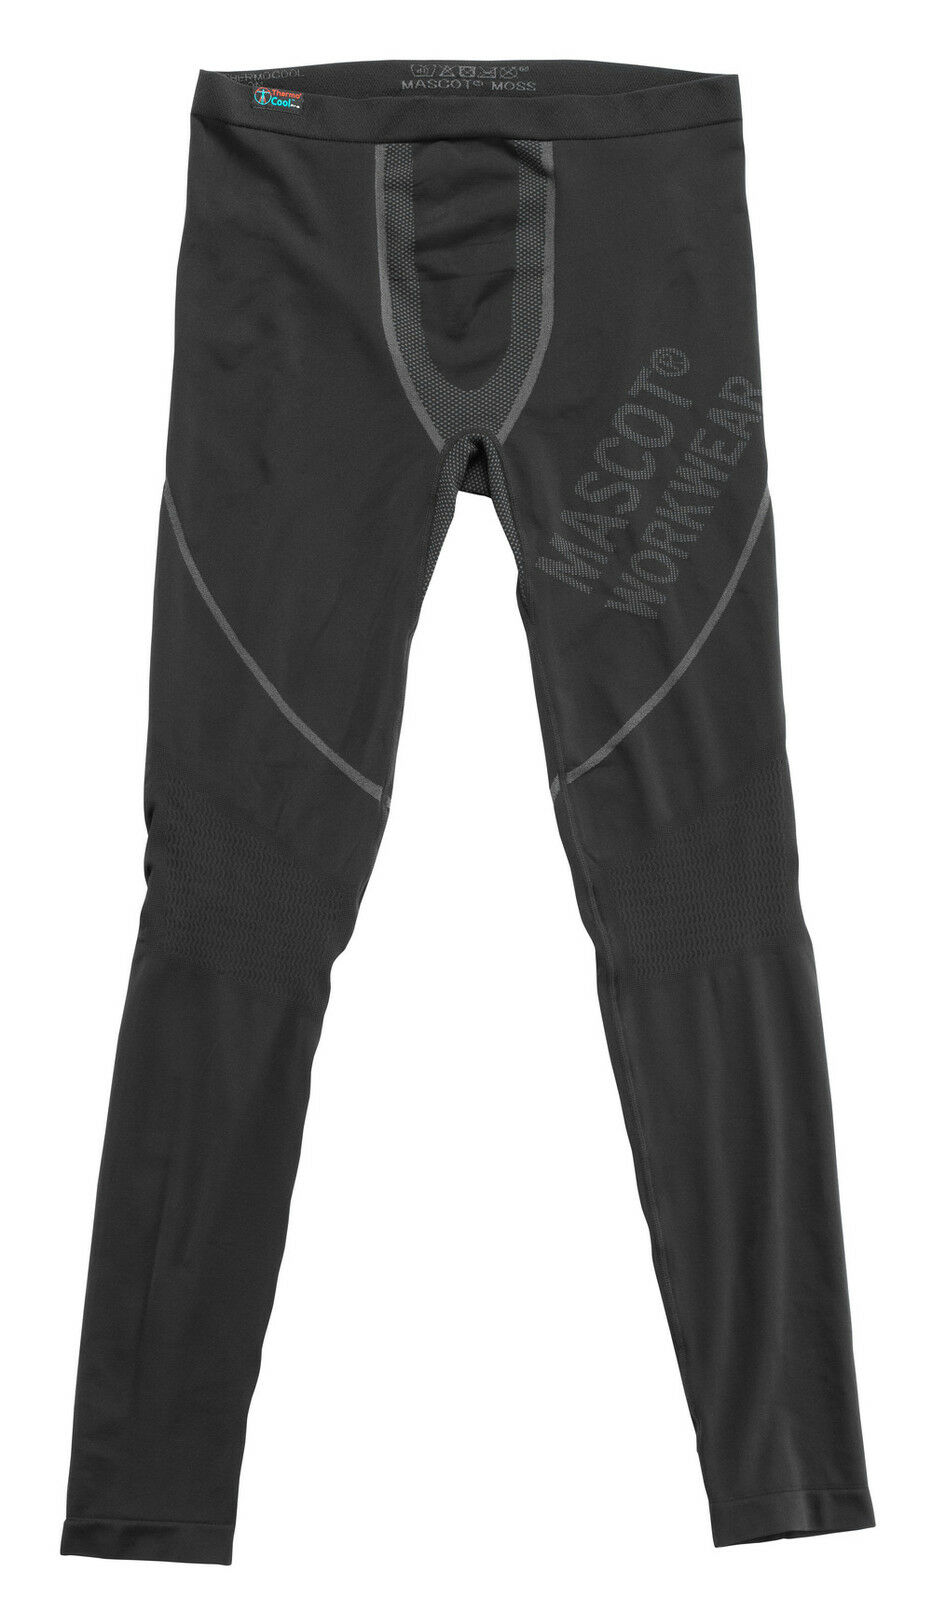 Mascot Workwear Moss Thermal Under Work Trousers